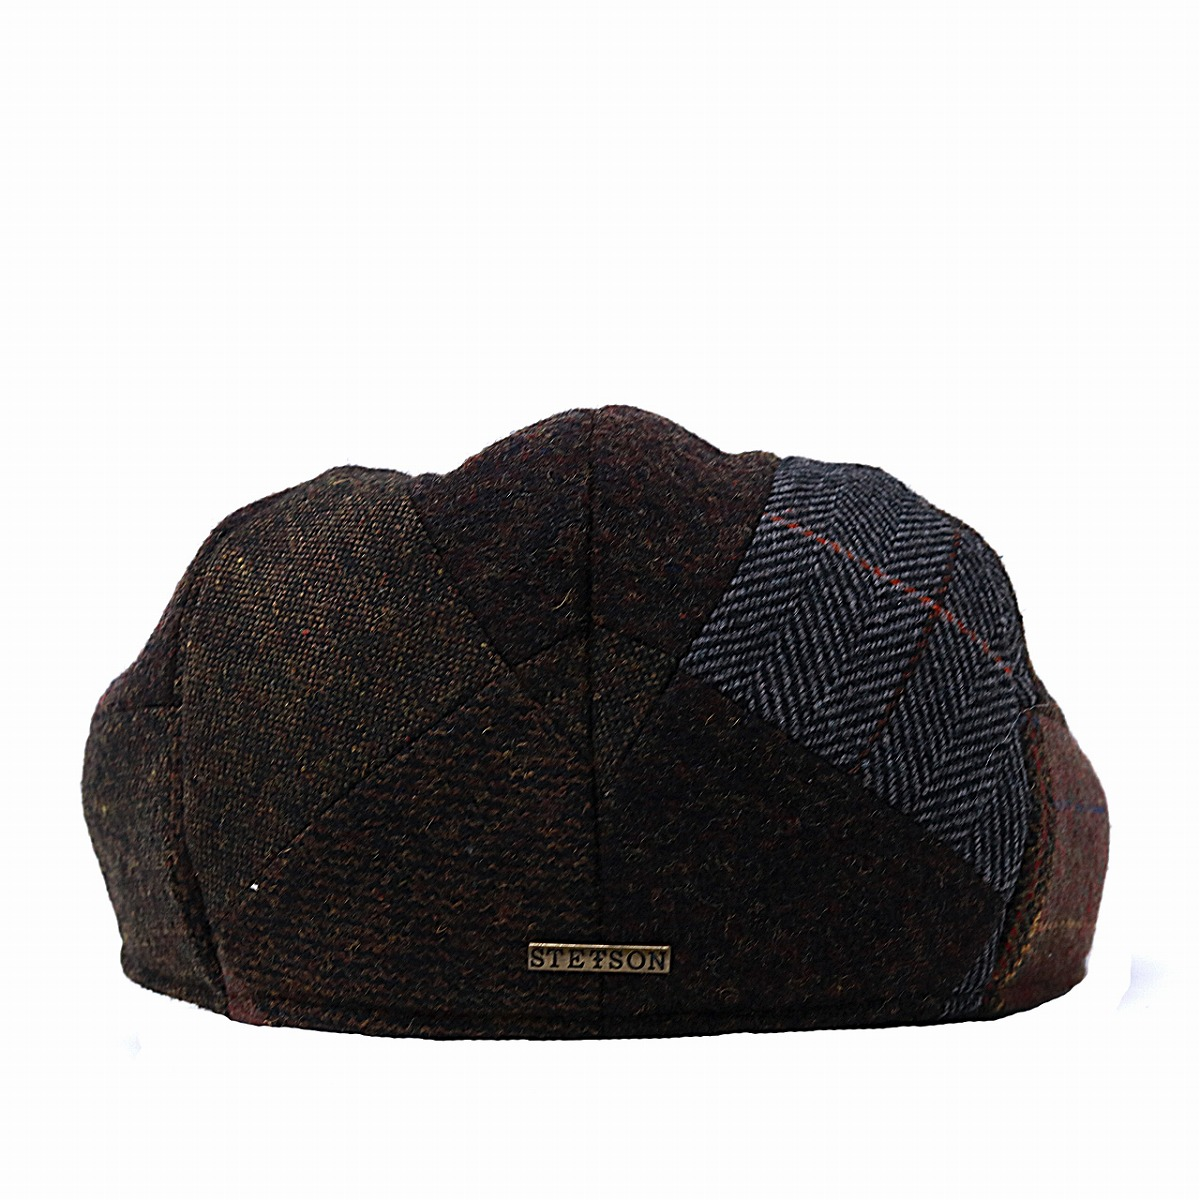 873dd47bea8 Hunting cap STETSON patchwork wool fabric hat men hunting cap hat checked  pattern gentleman Stetson ivy cap check cold protection tea brown [ivy cap]  ...